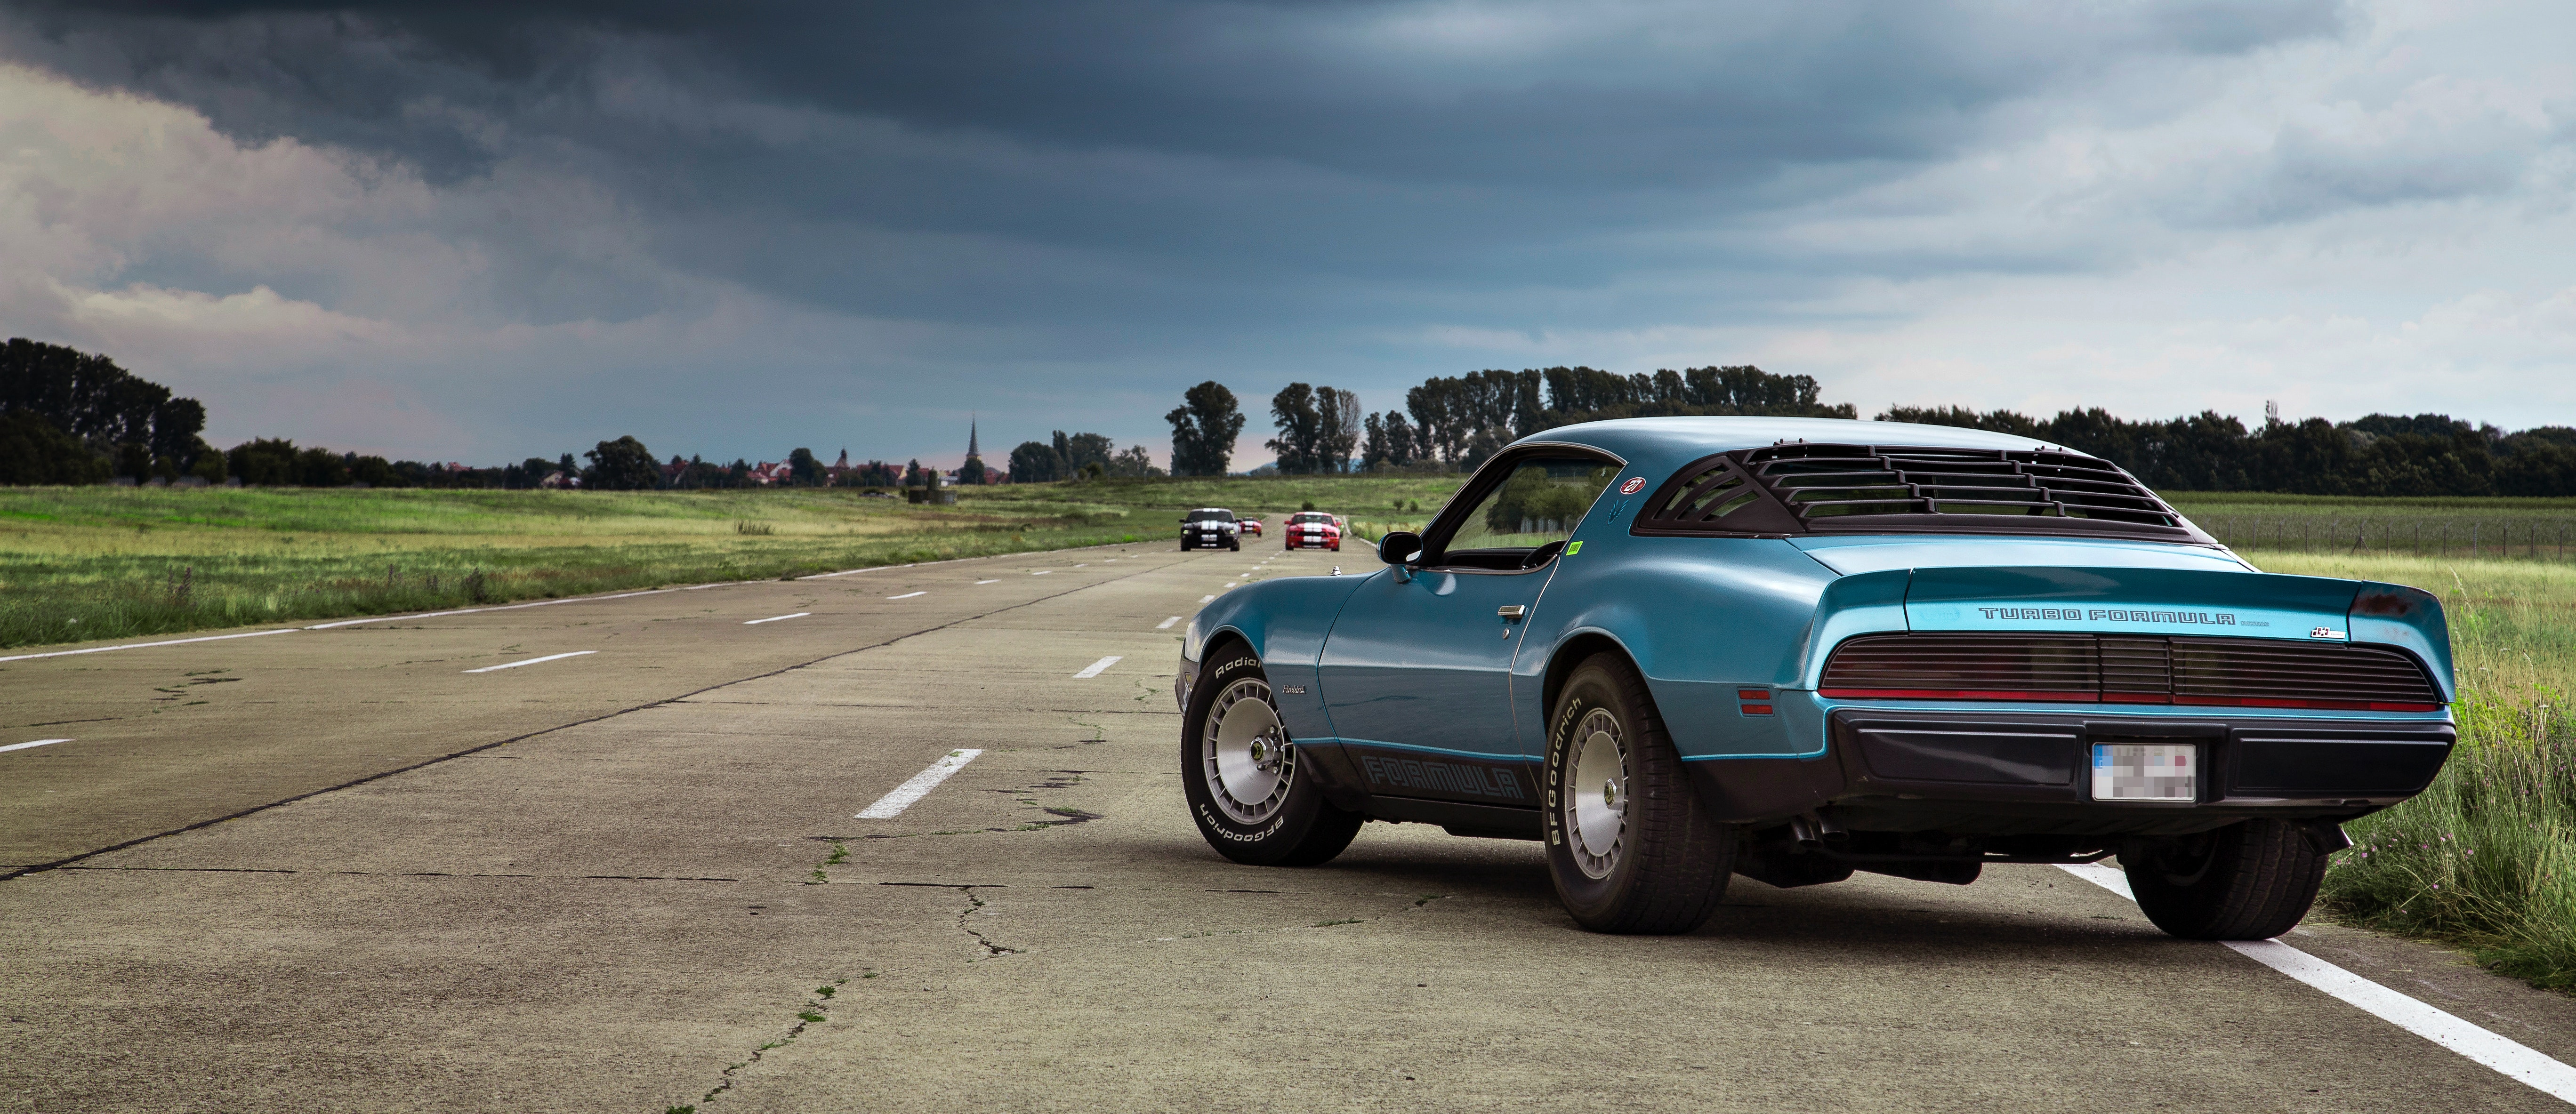 Car wallpapers pexels free stock photos - Old american cars wallpapers ...